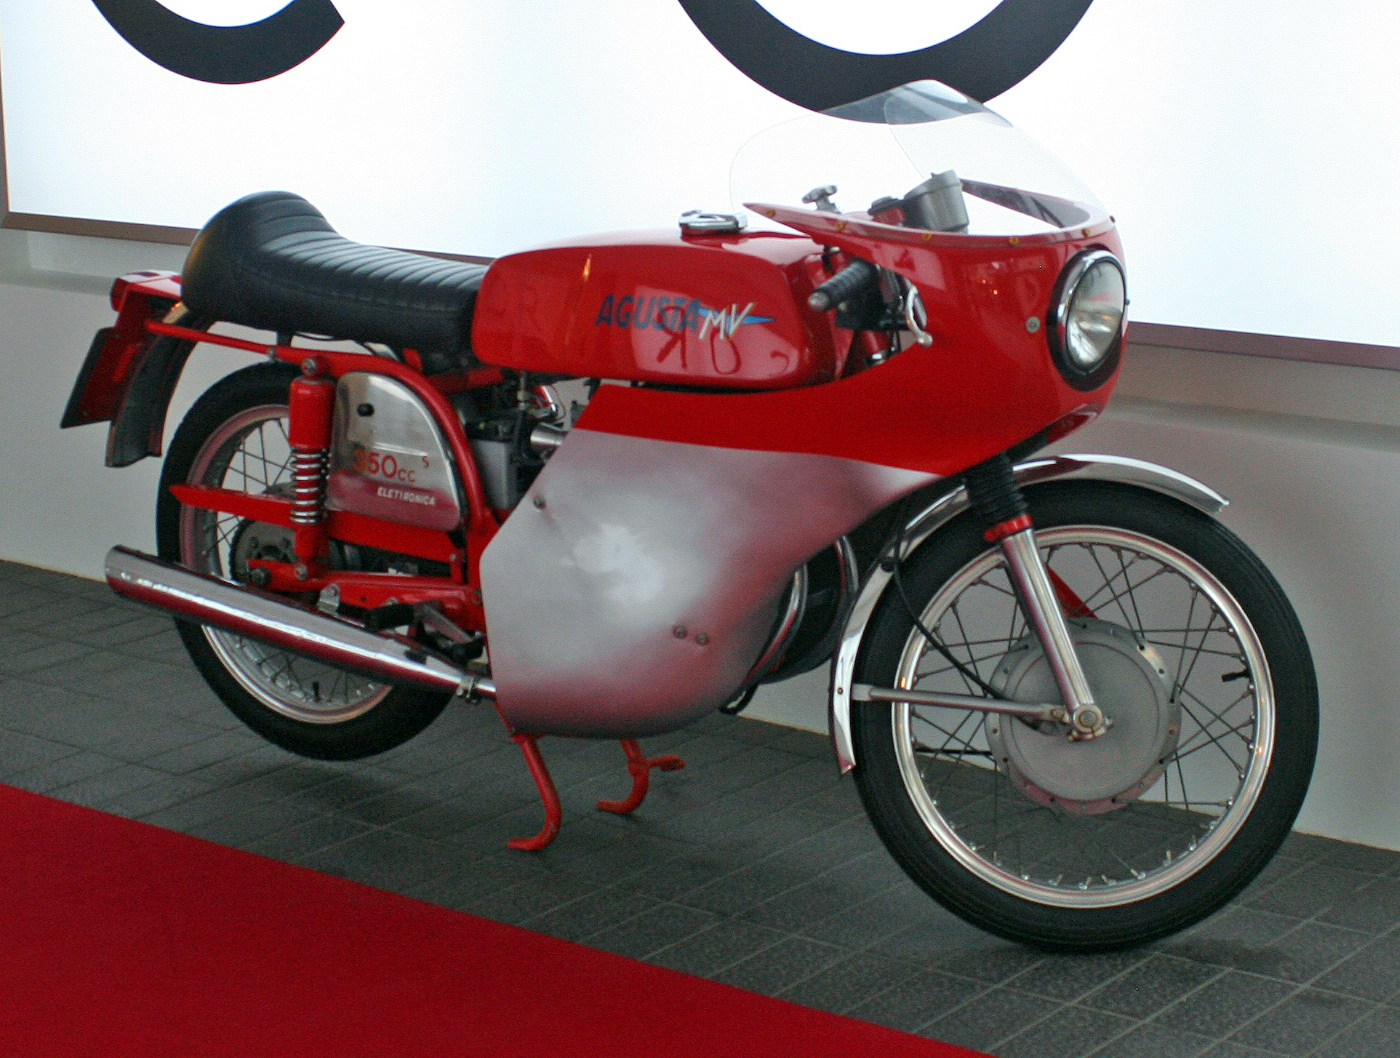 MV Agusta 350 S images #113810